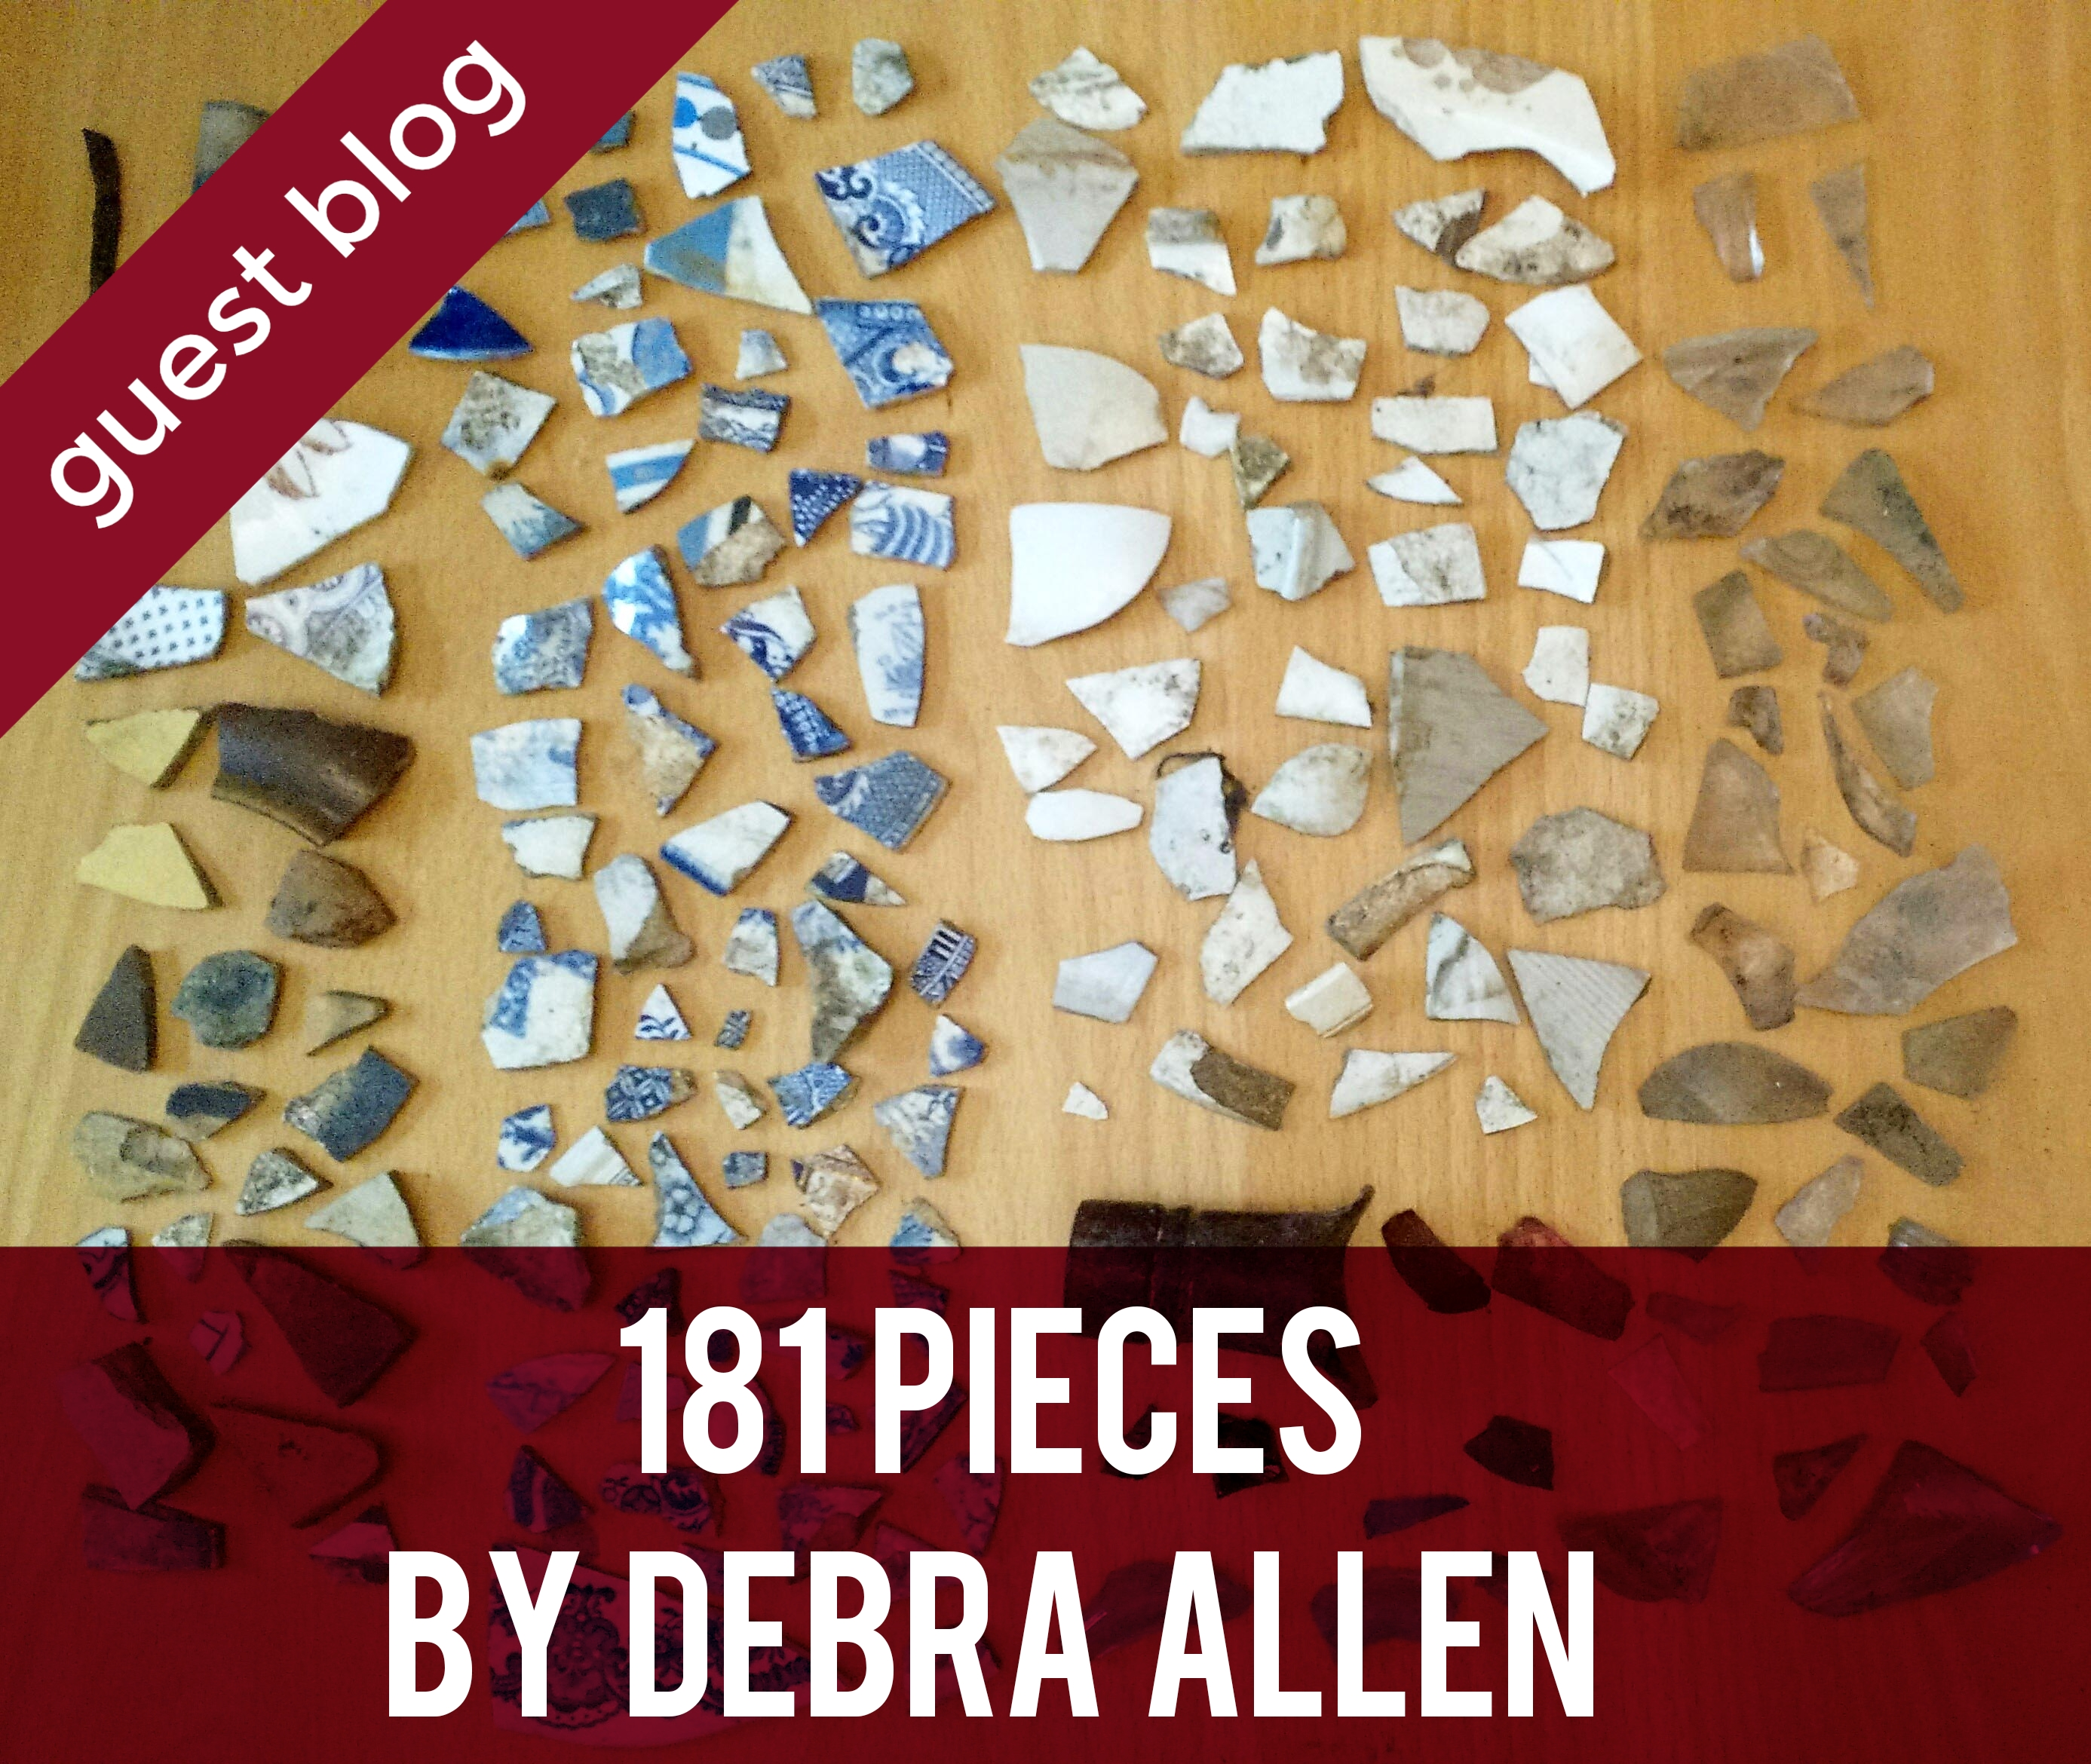 181 Pieces by Debra Allen header